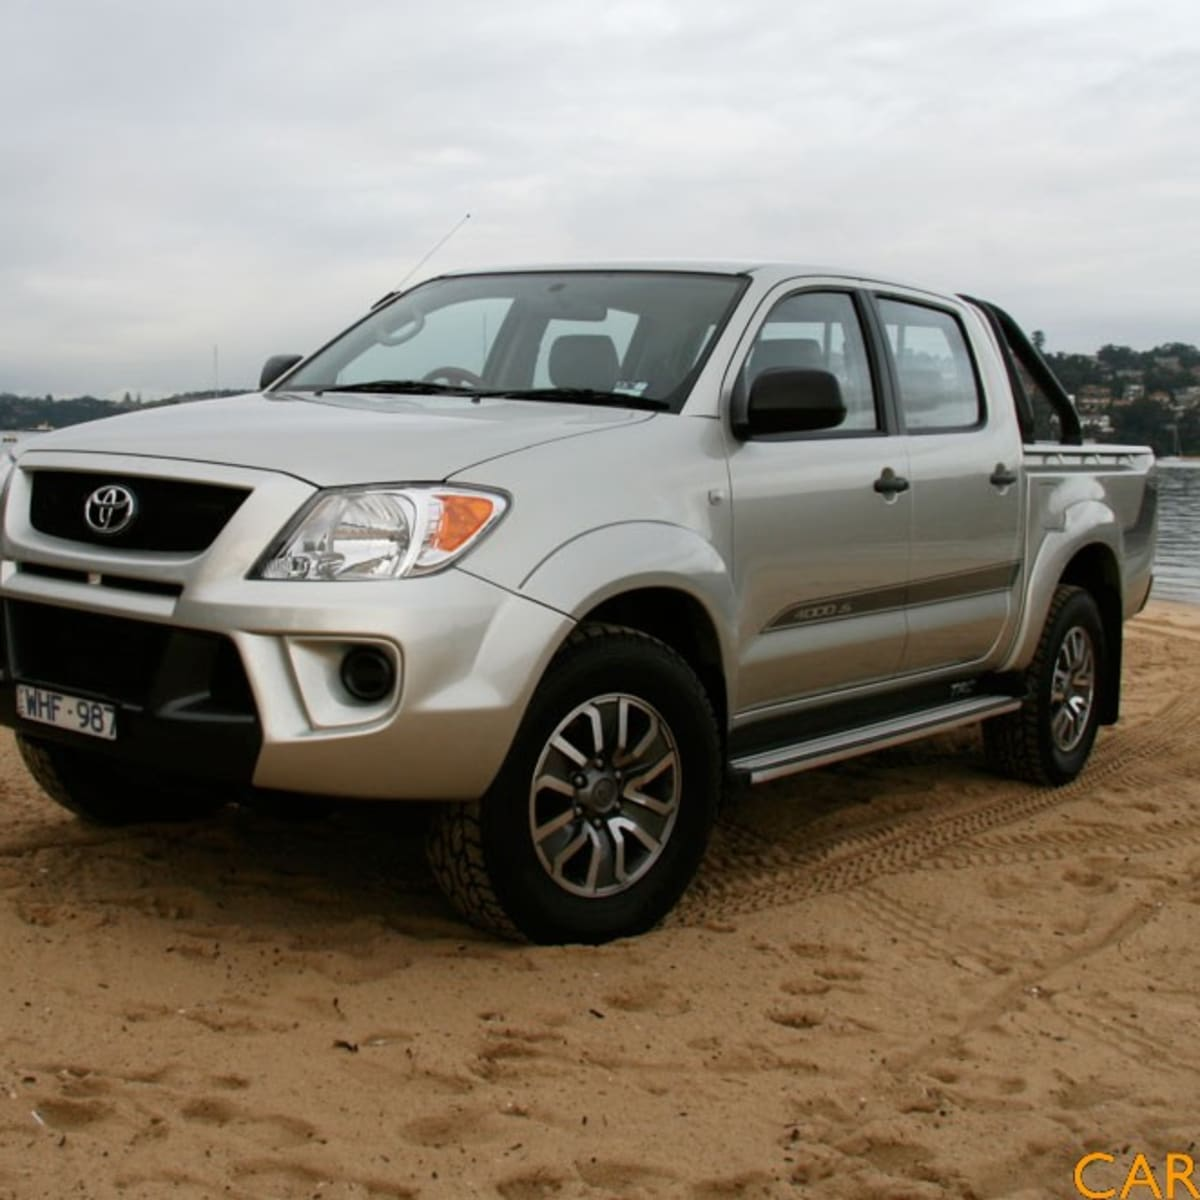 2008 Trd Hilux 4000sl Review Caradvice